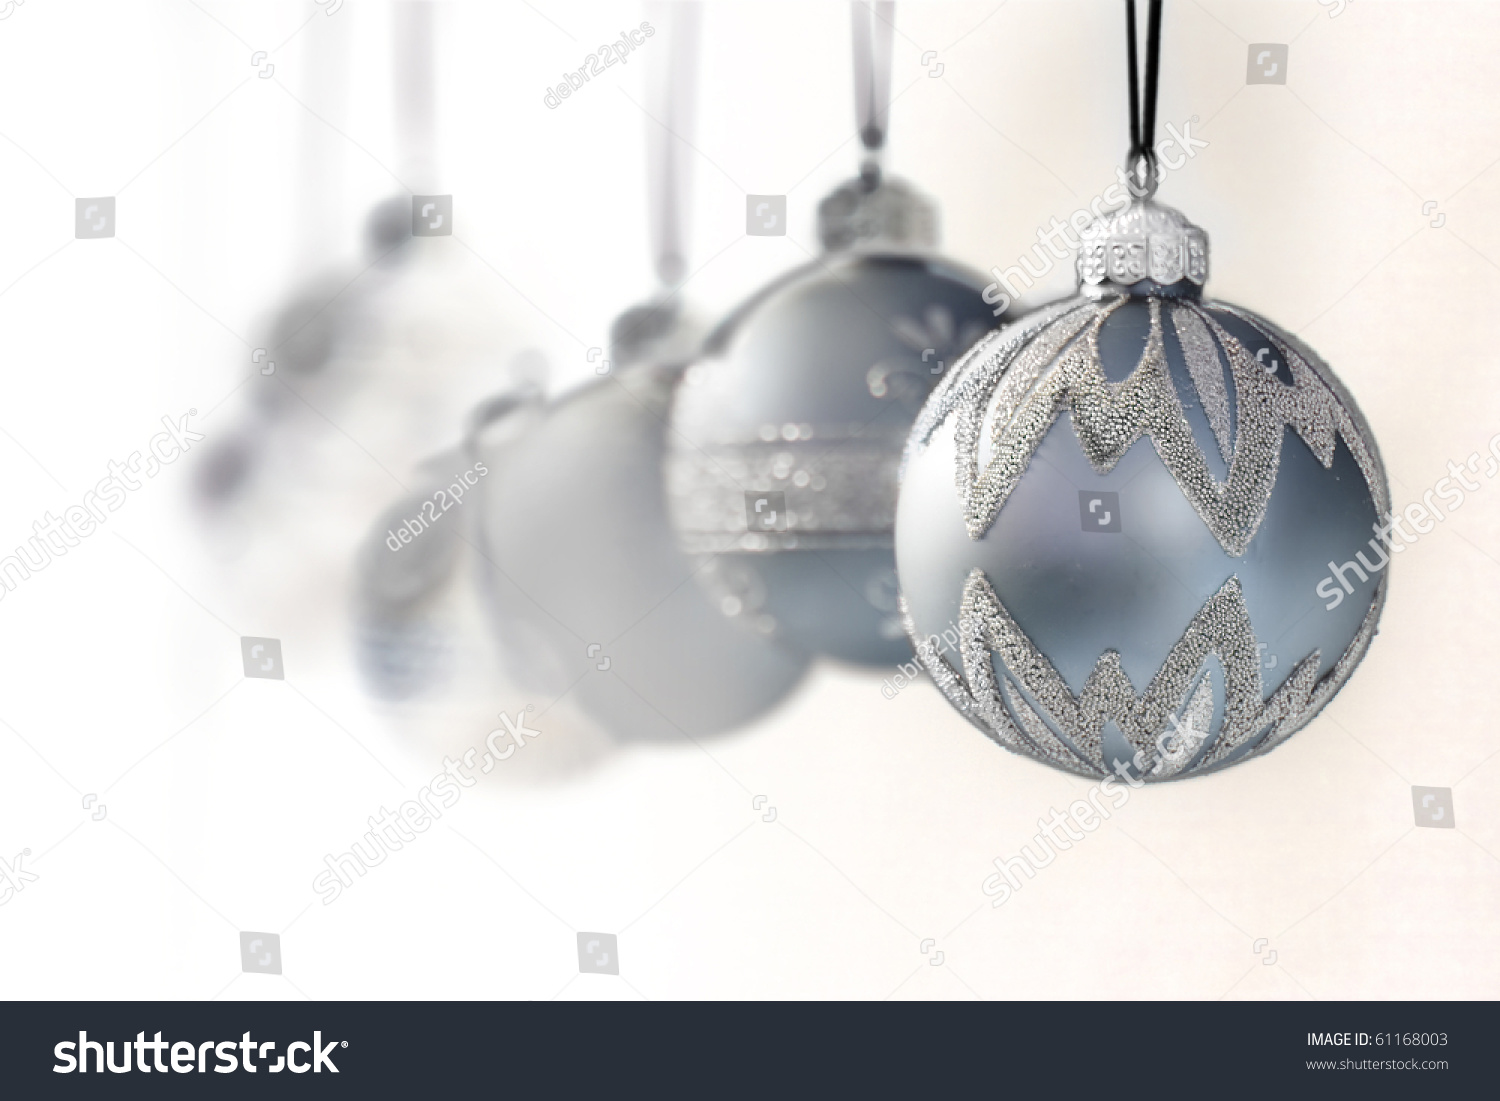 Blue Grey Luxury Christmas Ornaments Focus Stock Photo 61168003 ...